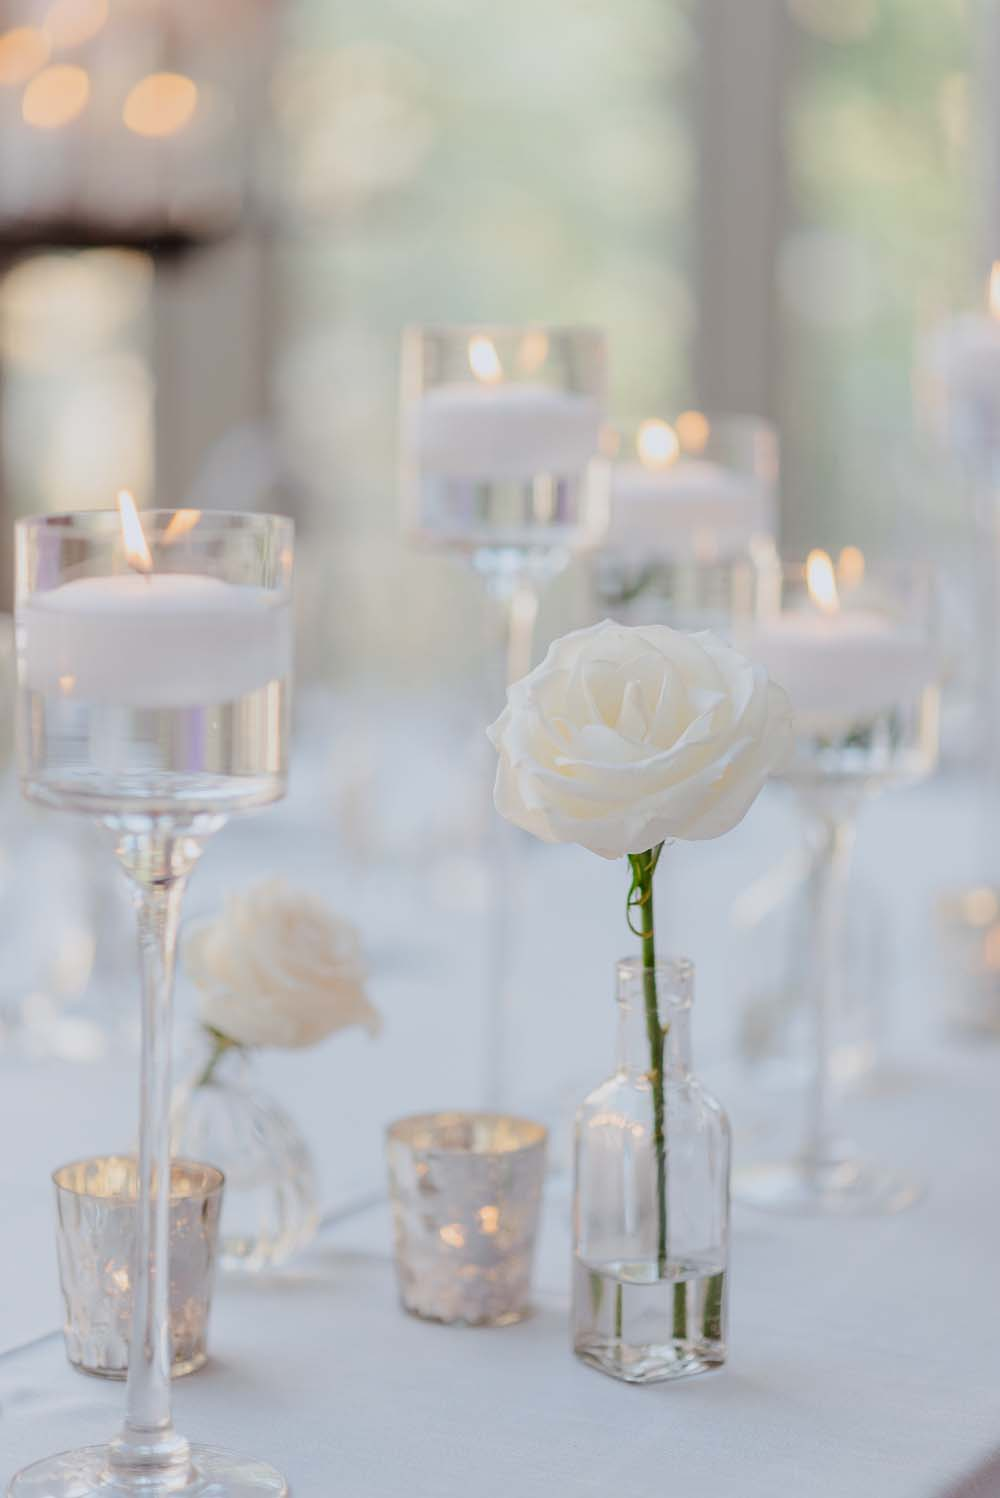 An Opulent Wedding At The Royal Conservatory Of Music - rose